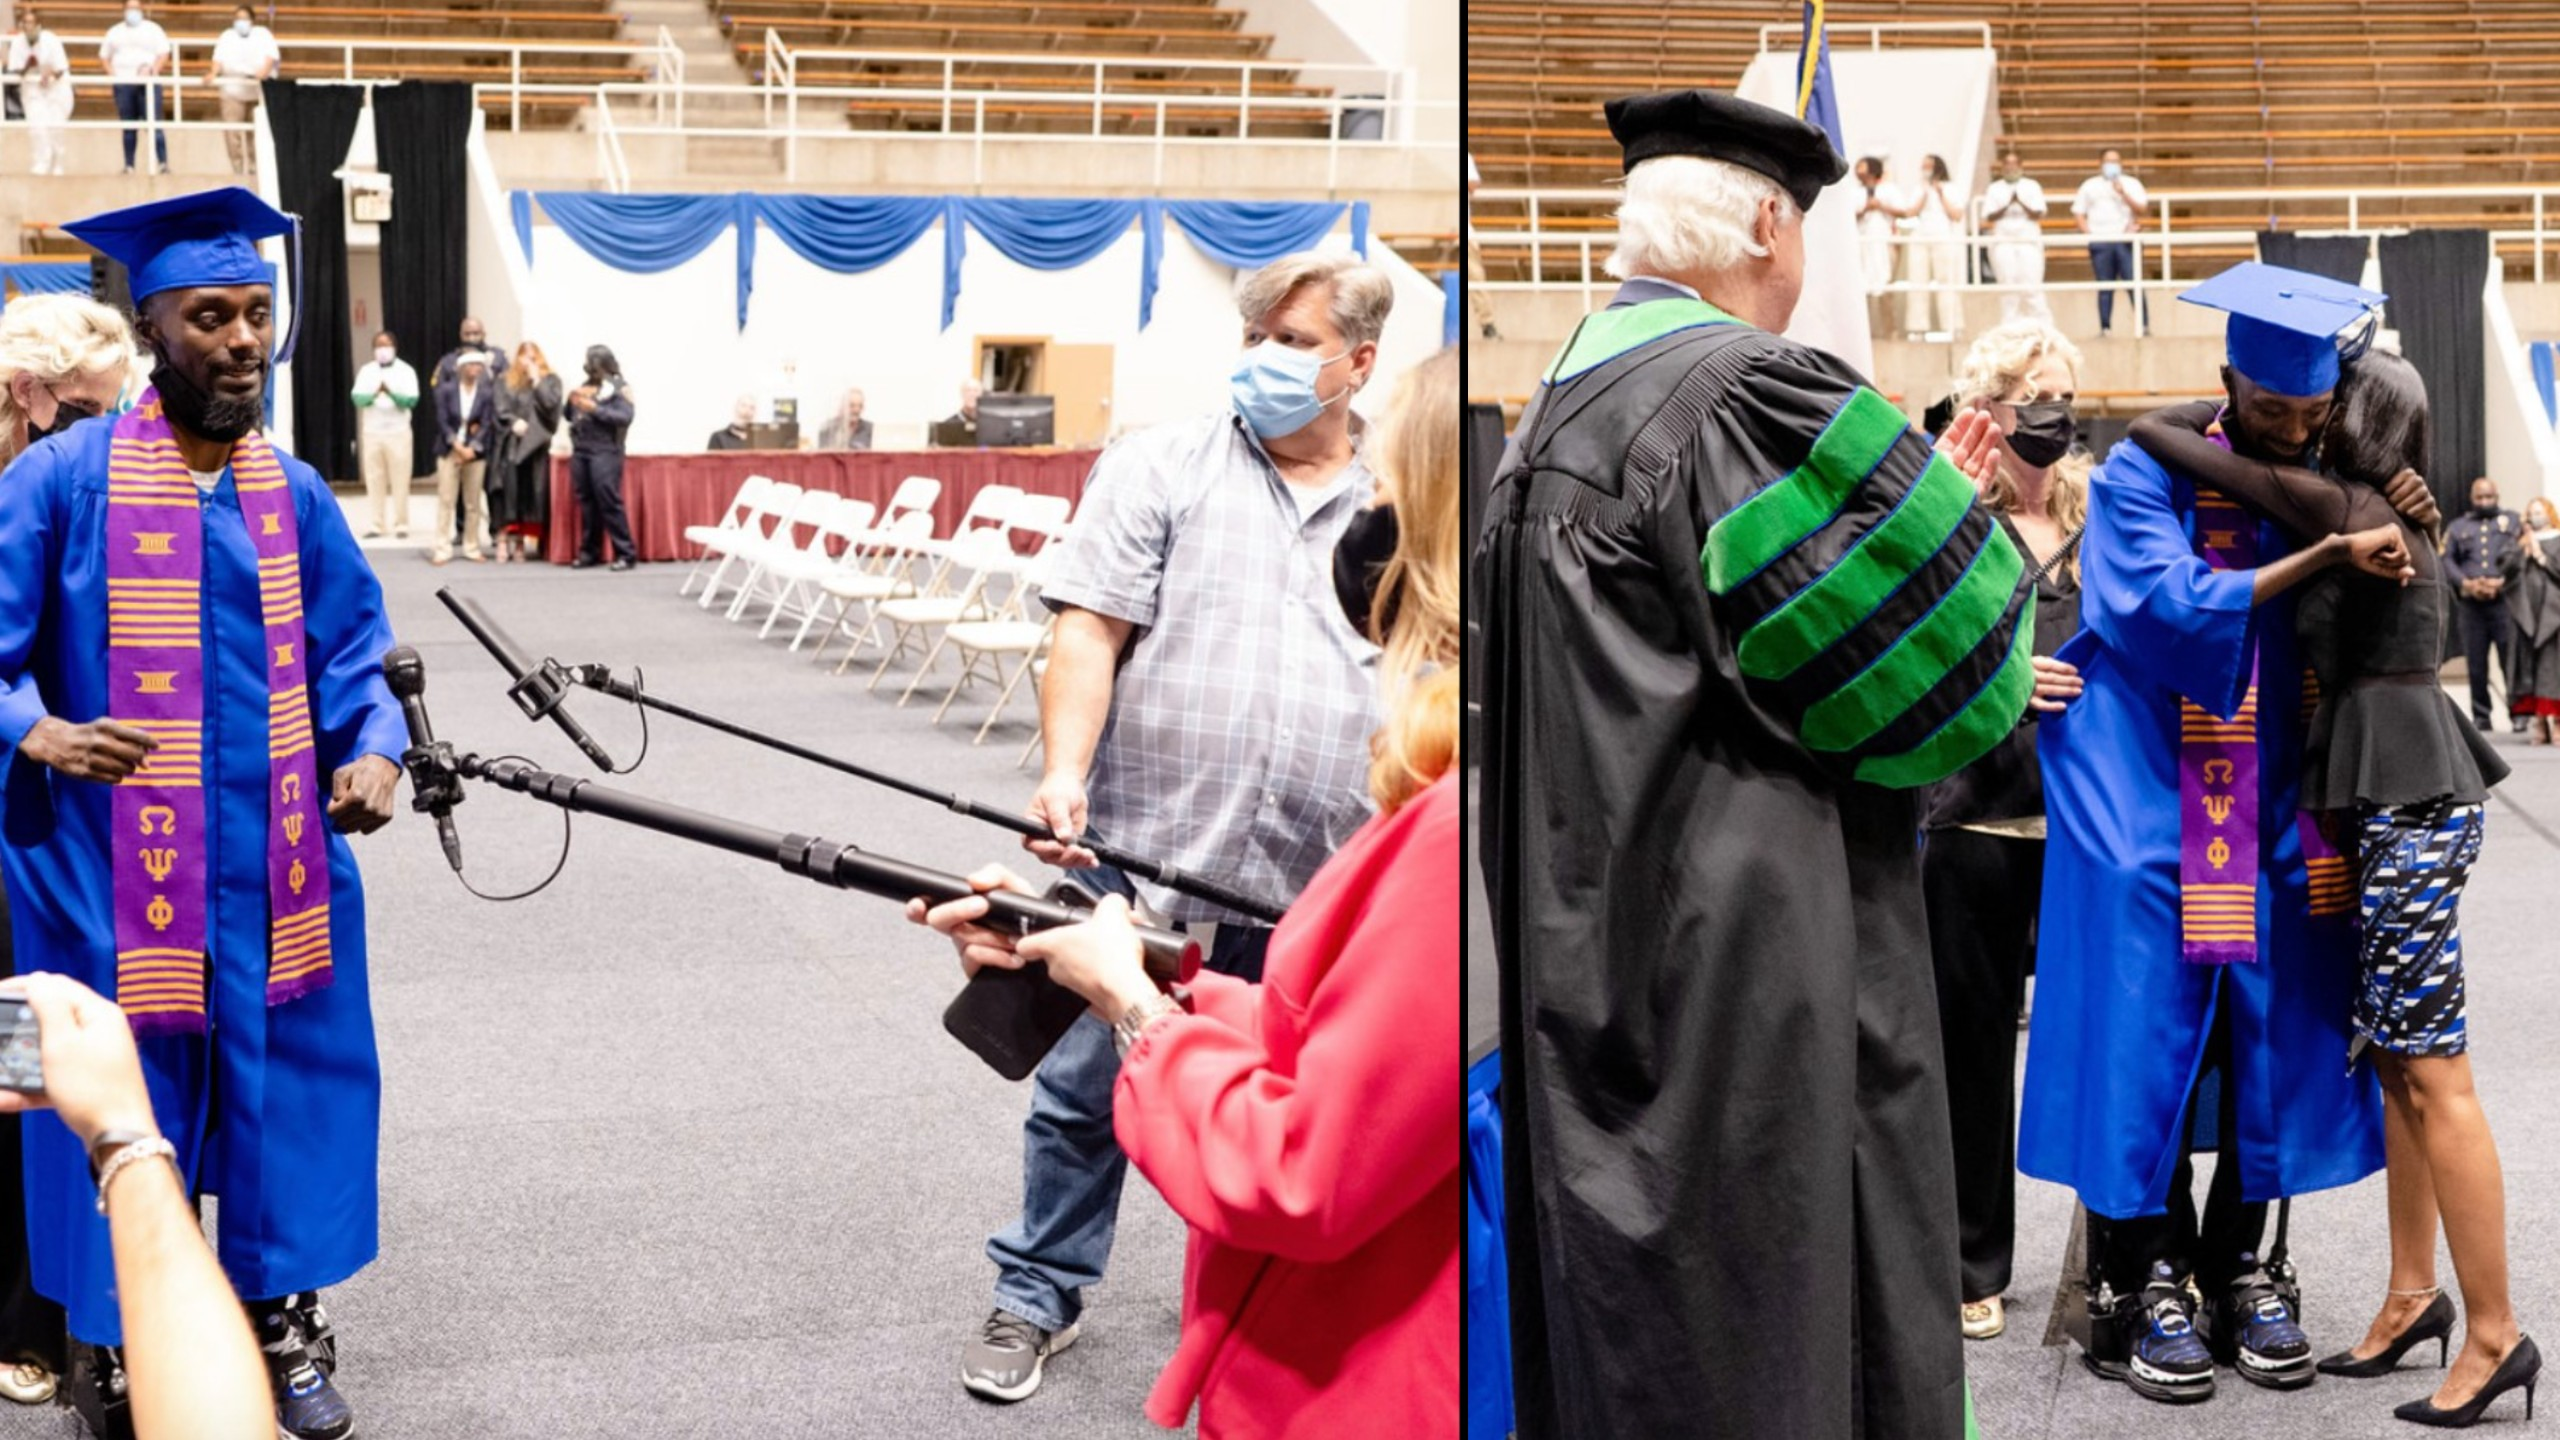 Paralyzed former football player walks at college graduation